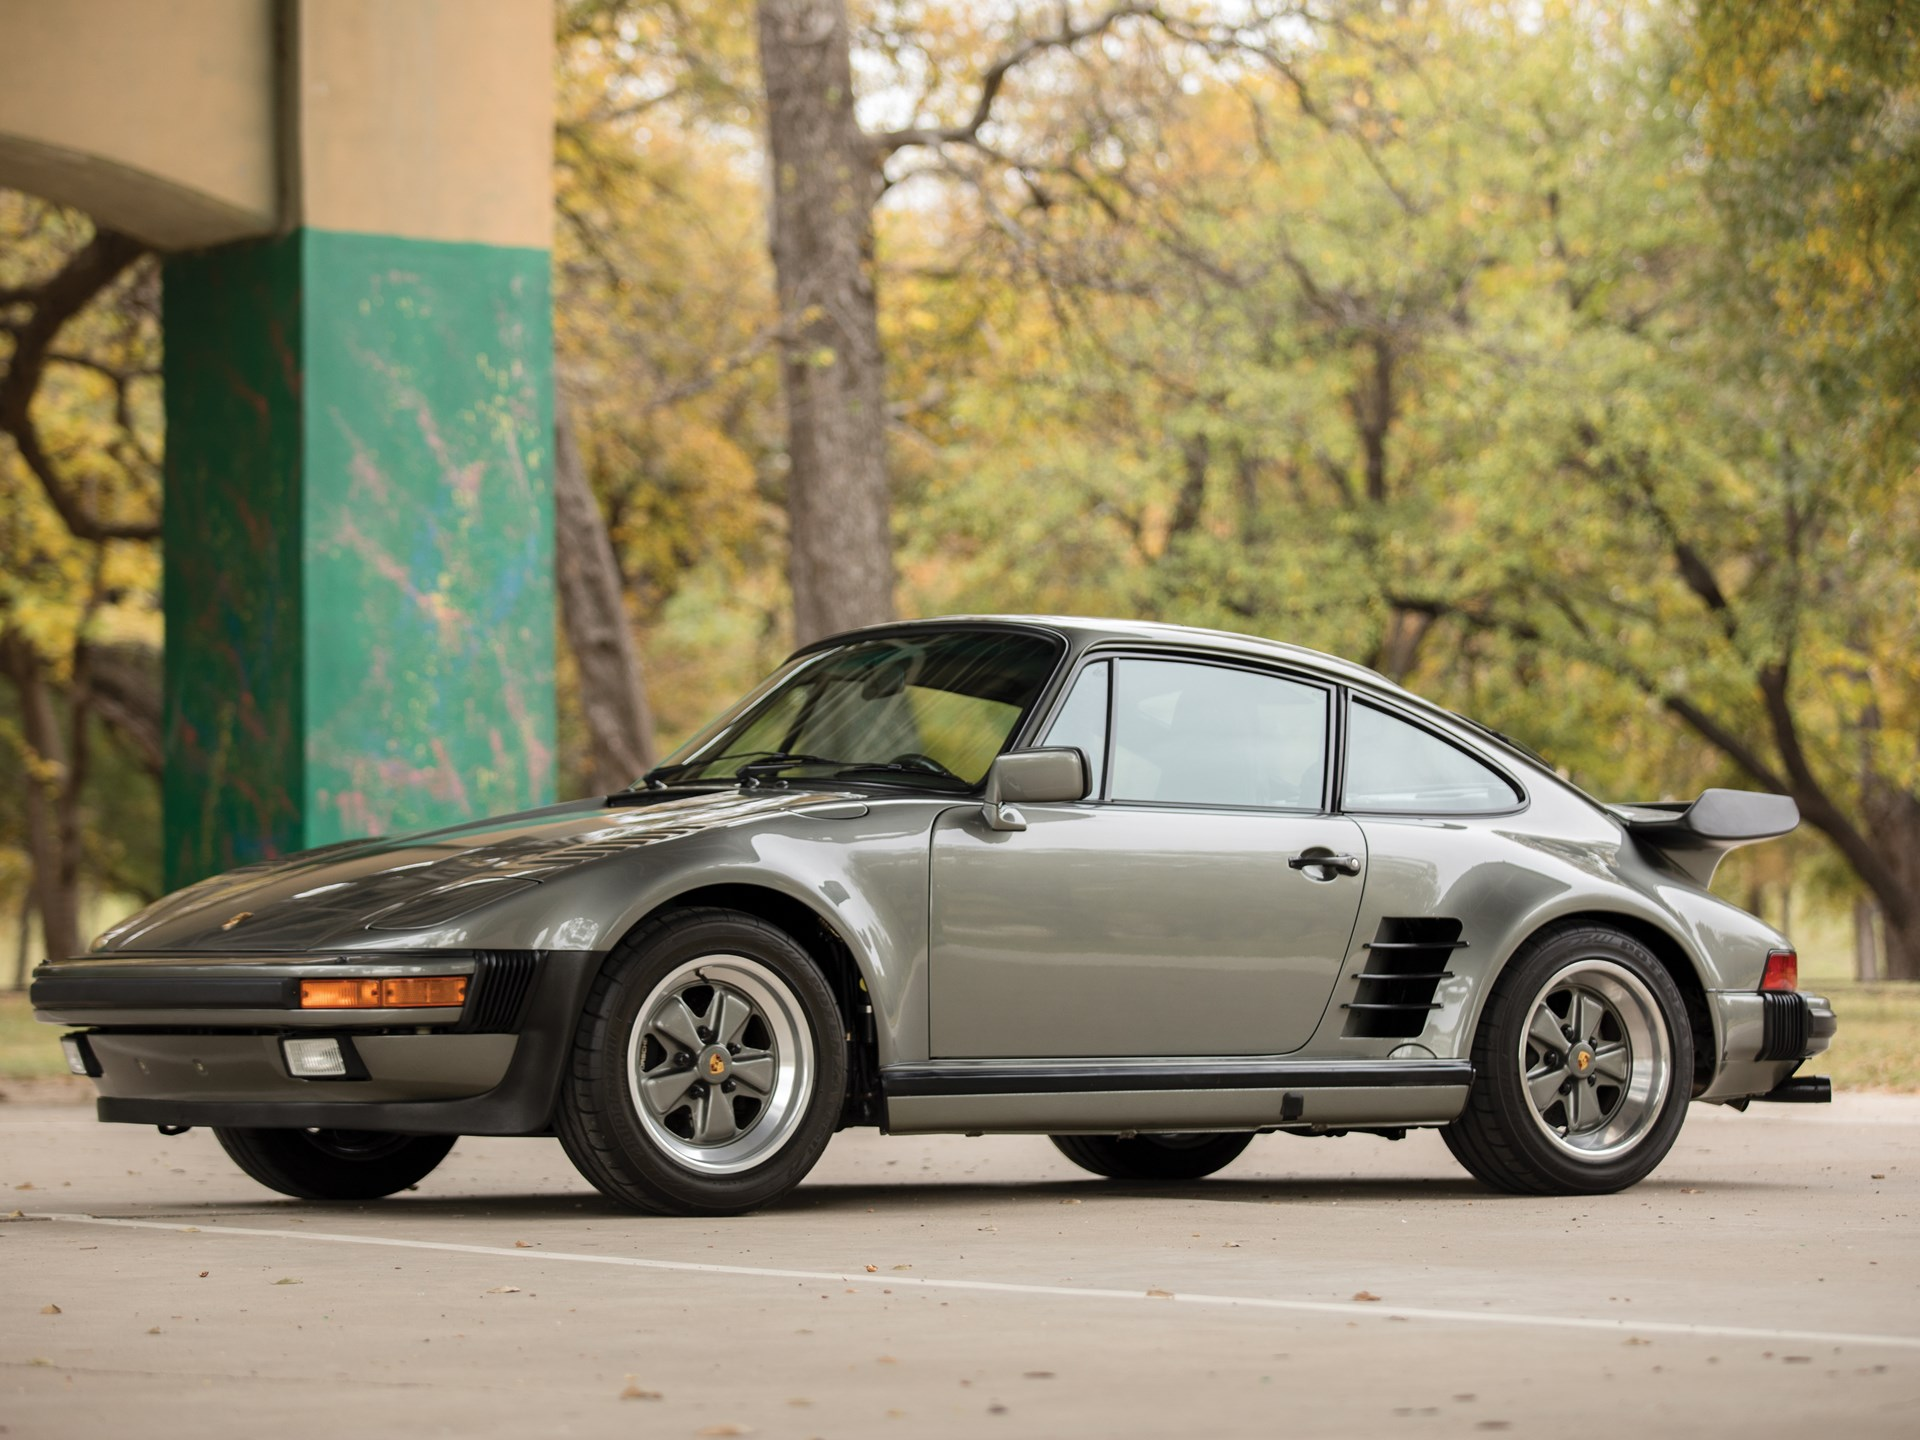 1988 Porsche 911 >> Rm Sotheby S 1988 Porsche 911 Turbo Flat Nose Coupe Arizona 2018